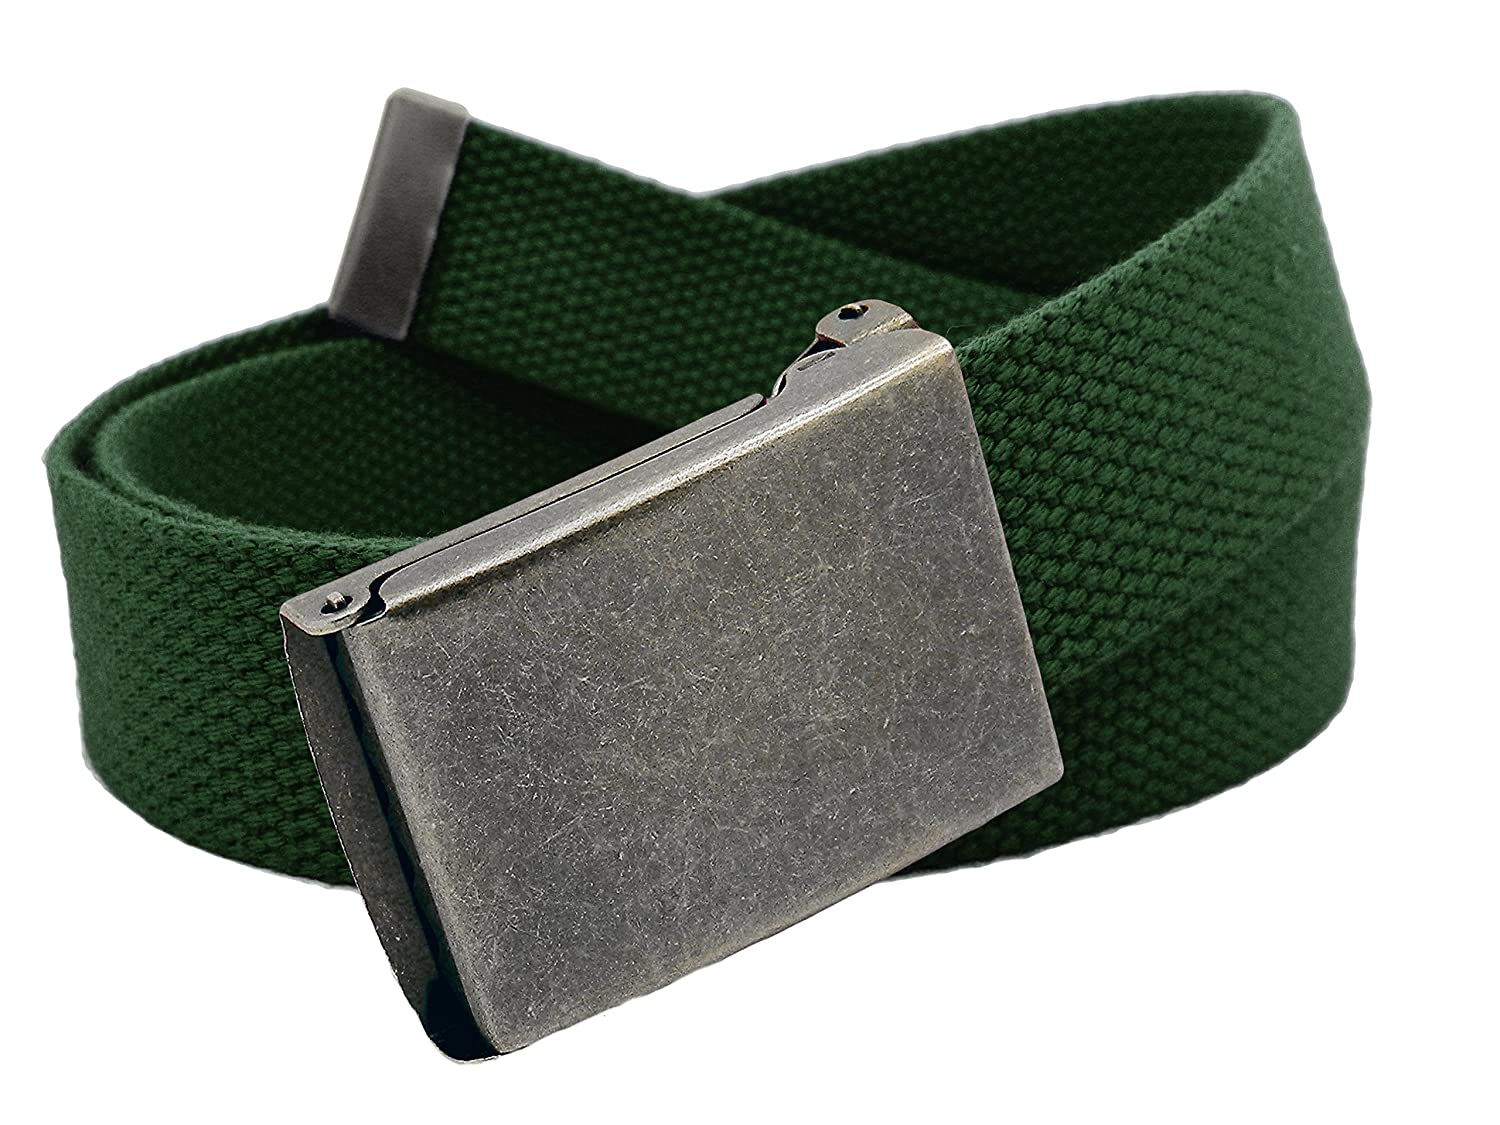 Boy's Easy Snap Distressed Silver Military Style Buckle with Adjustable Canvas Belt for School Uniforms 6504-GM-$P